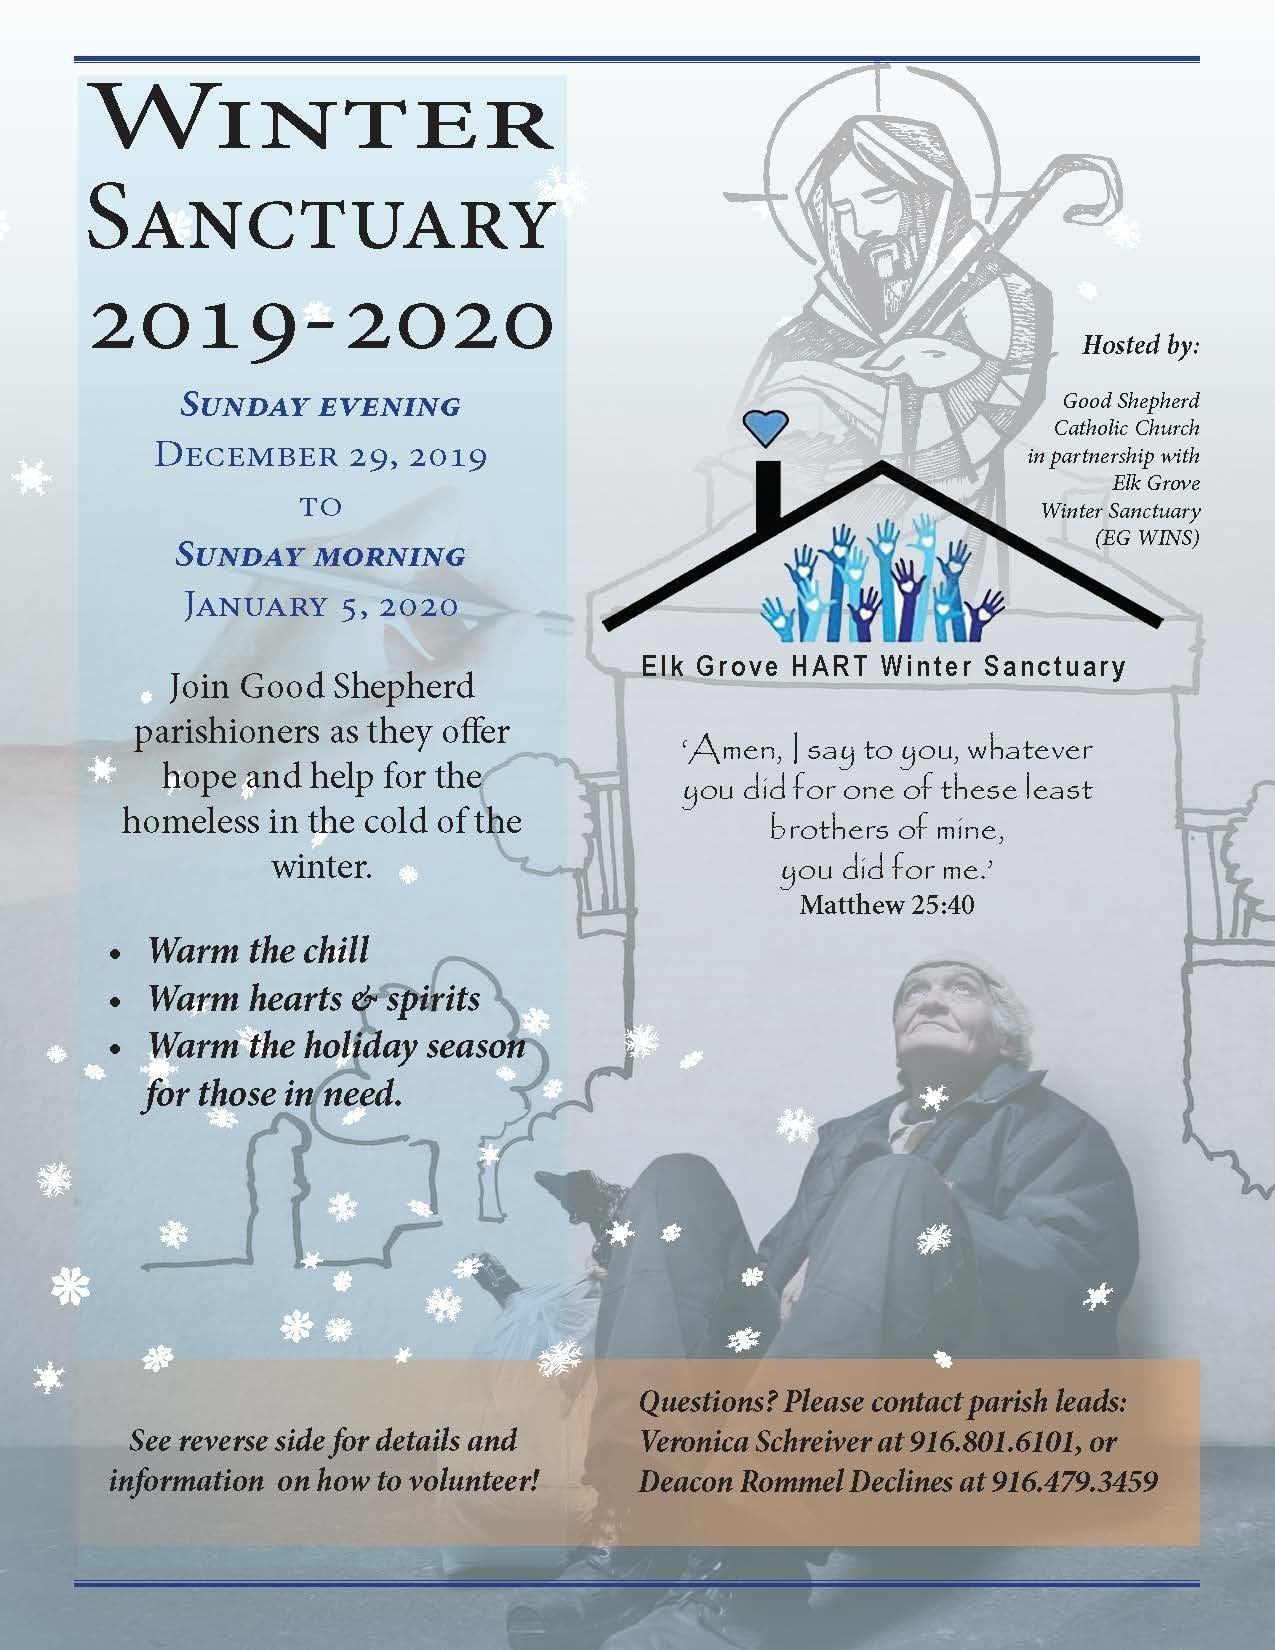 Winter Sanctuary 2019 Flyer For Hardcopy Use No Links Page 1